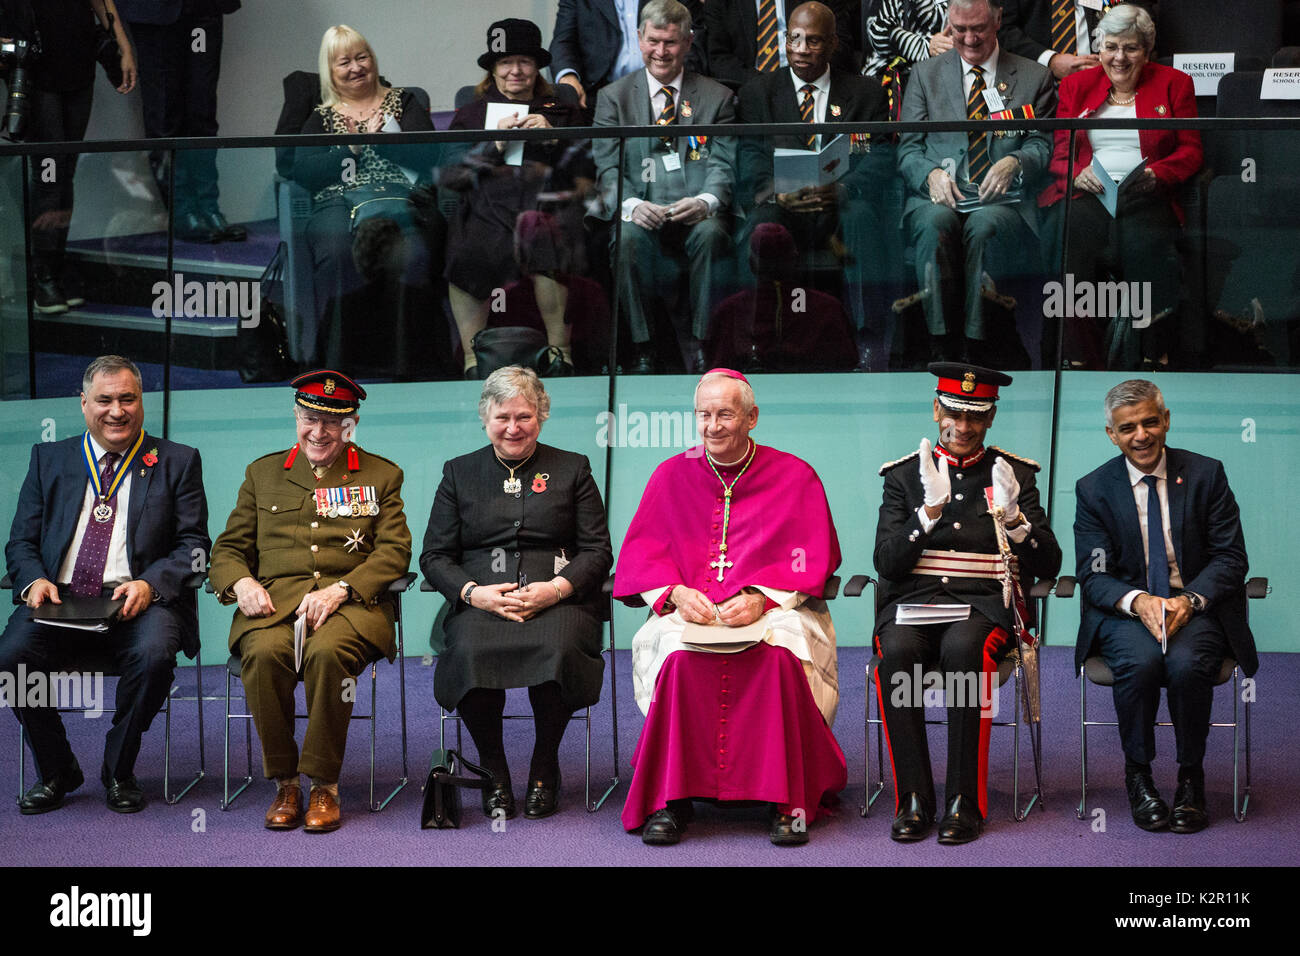 London, UK. 10th Nov, 2017. The Annual Service of Remembrance at City Hall was attended by Mayor of London Sadiq Khan with Jennette Arnold OBE AM, Chair of the London Assembly, Members of Parliament, London Assembly Members, Greater London Authority staff, representatives from London Government and public service organisations, and members of the Armed Forces, to commemorate those who served and lost their lives in the two world wars and other conflicts. Credit: Mark Kerrison/Alamy Live News - Stock Image